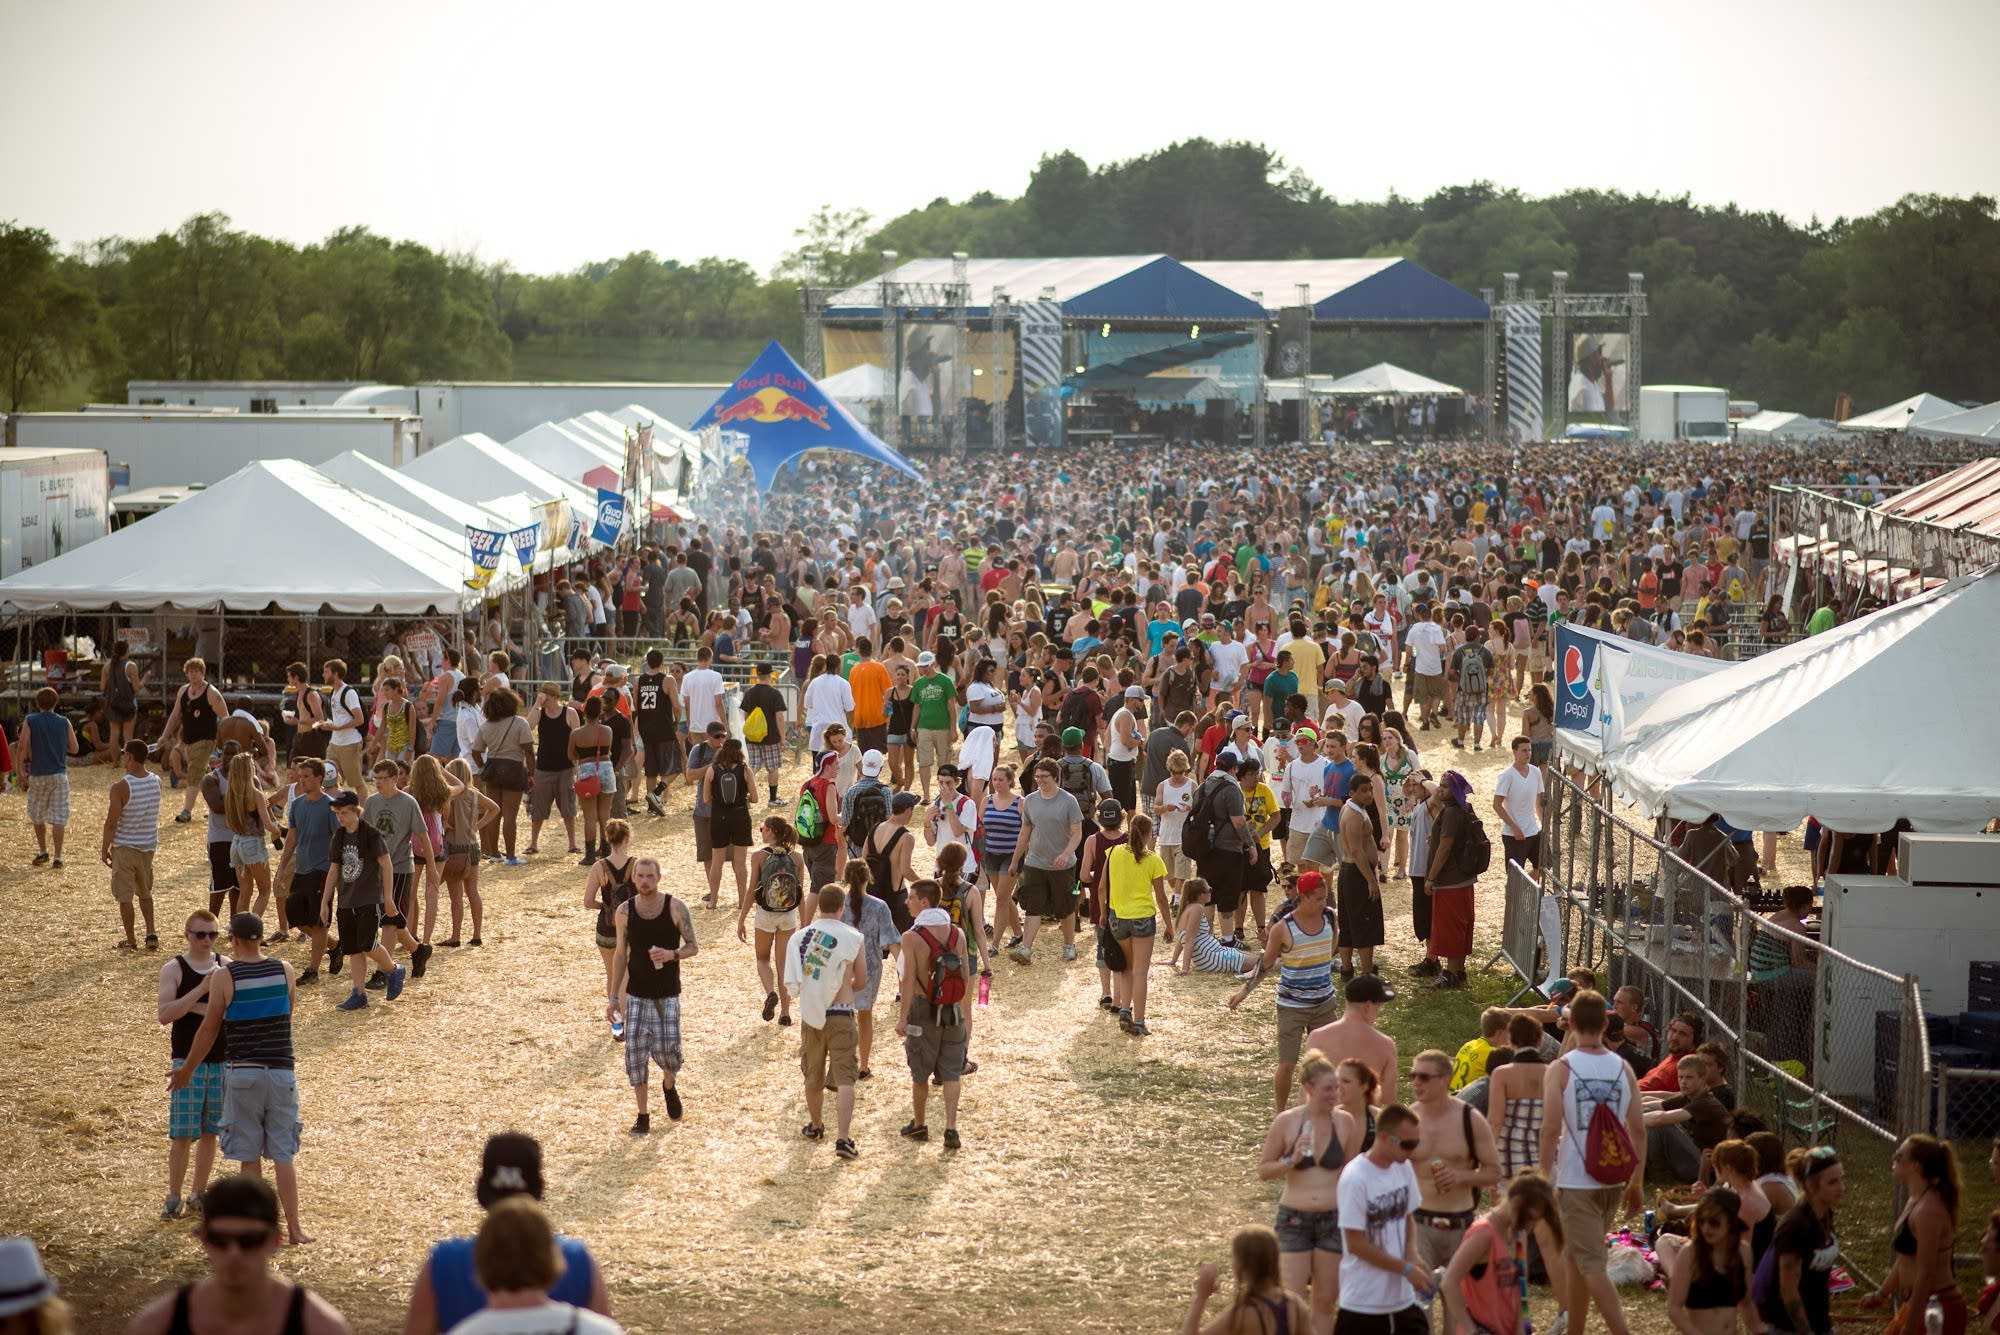 Crowds gather in Shakopee's Canterbury Park at Soundset 2012